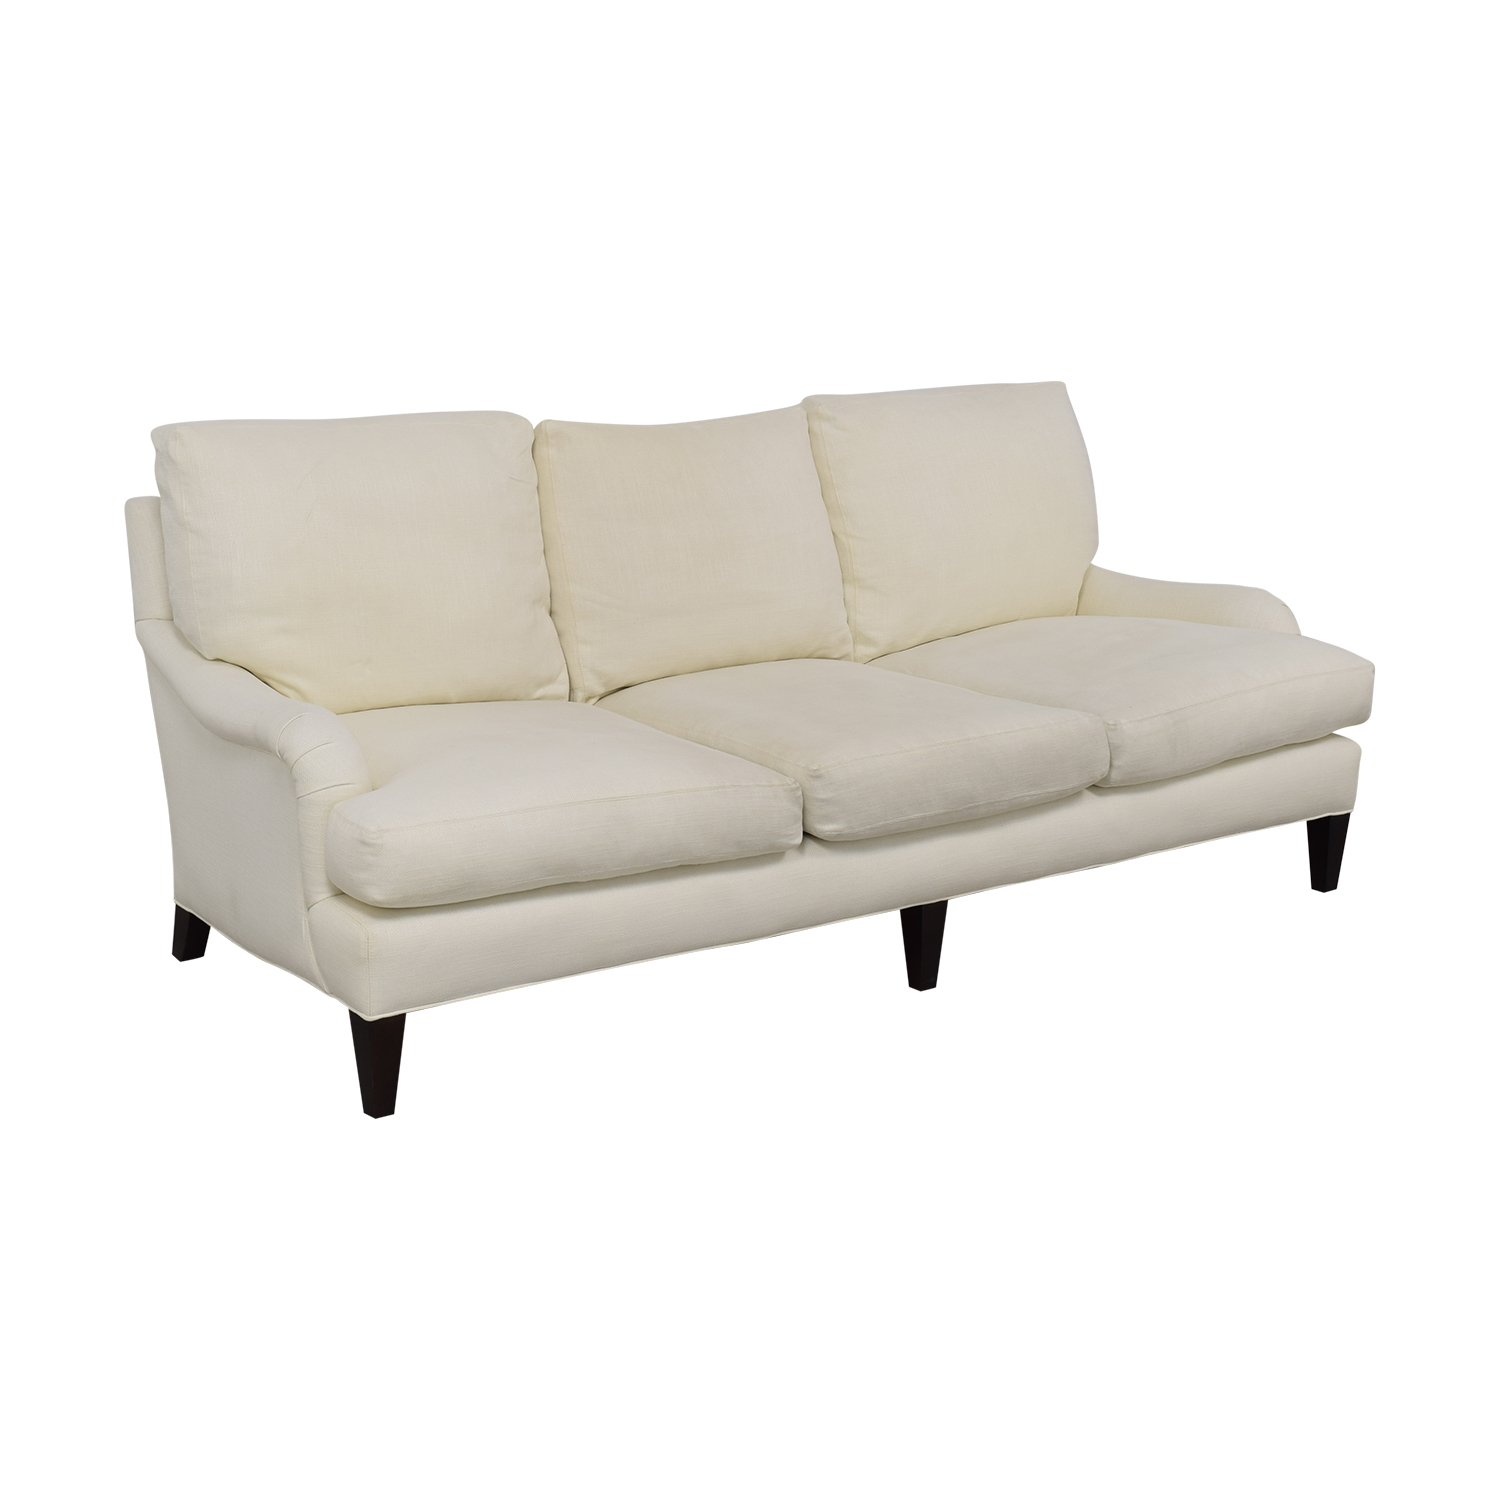 Lee Industries Custom Three Seater Sofa Online